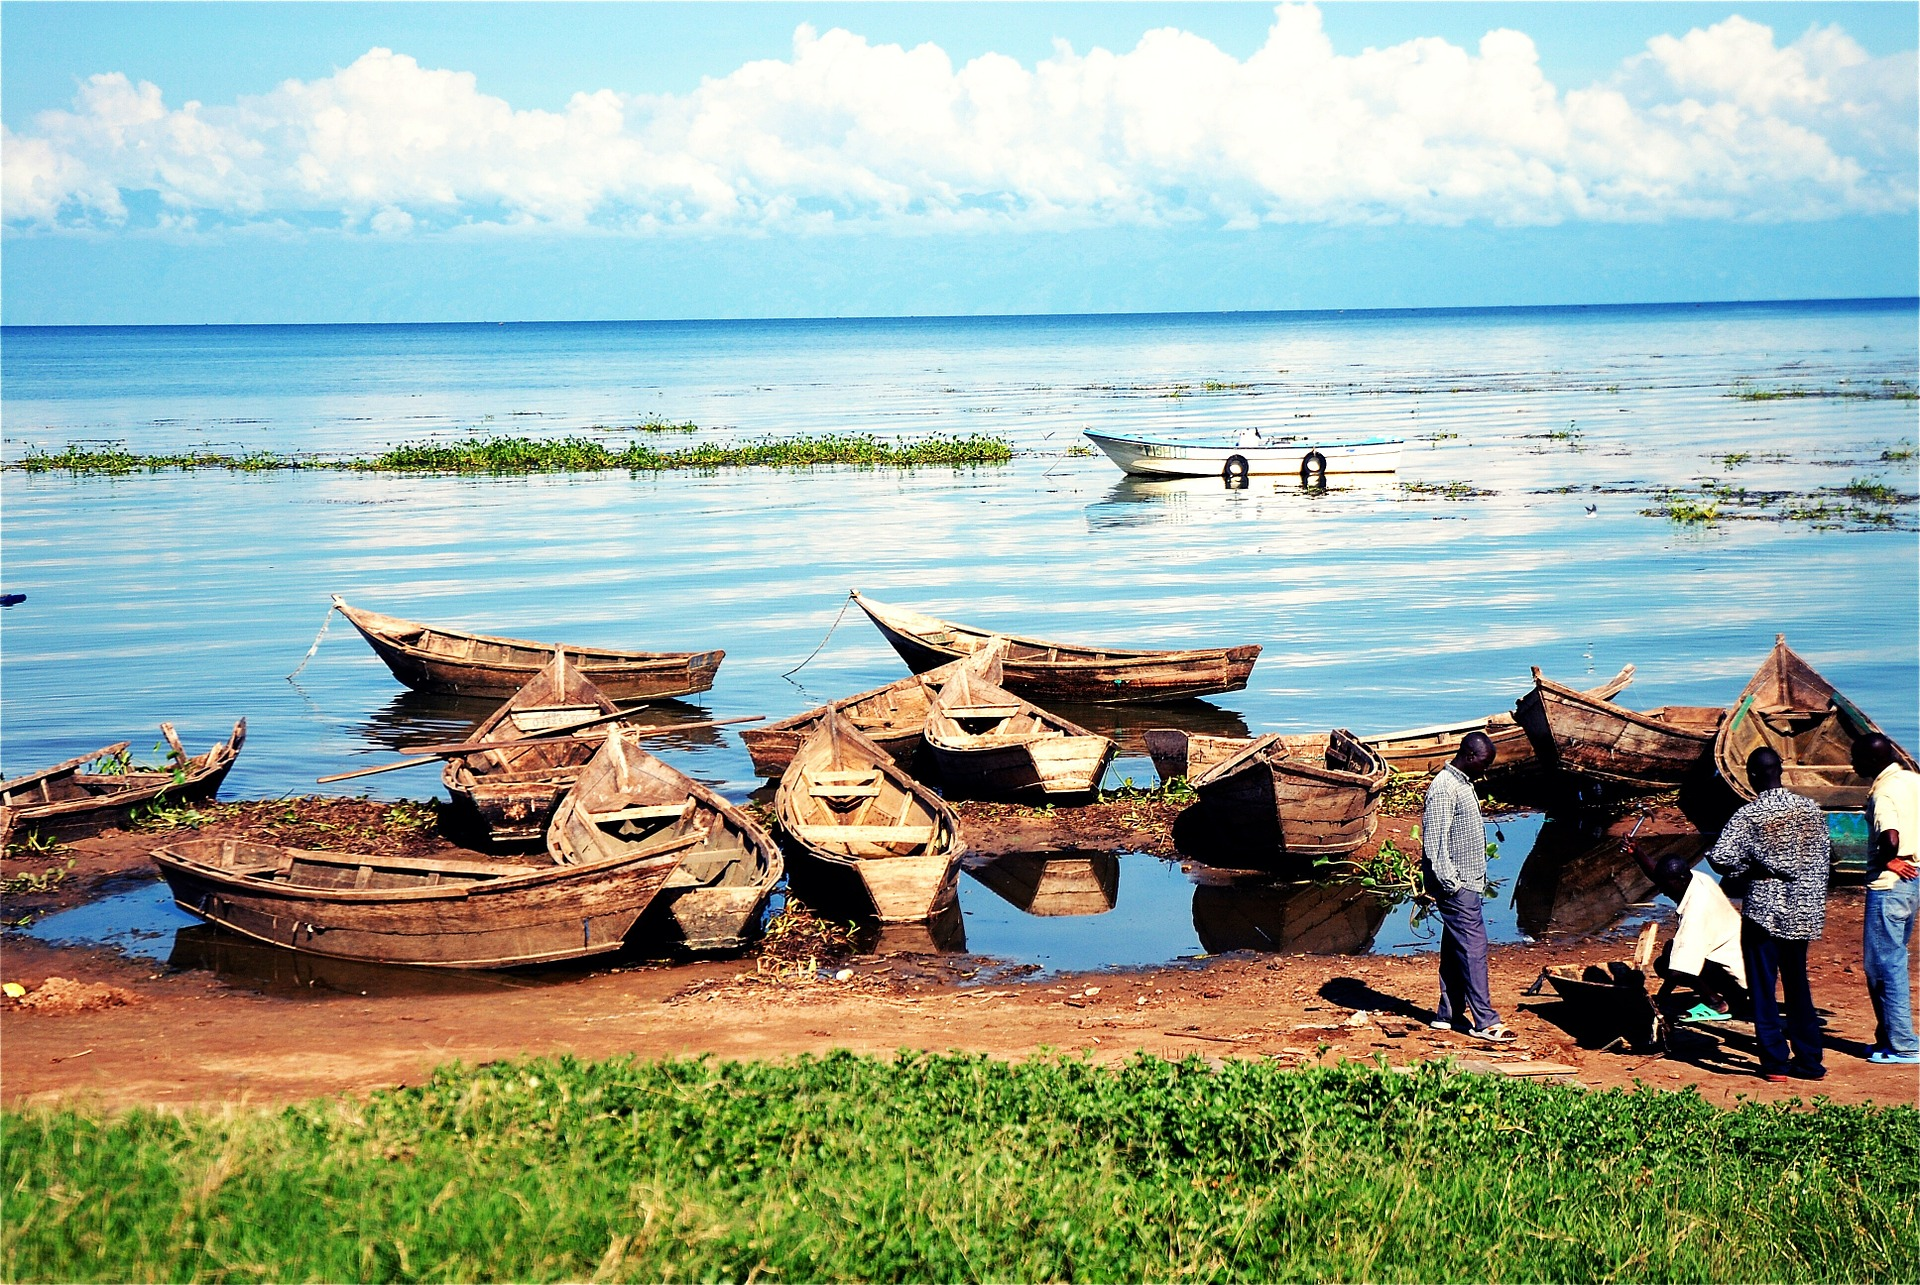 The Definitive Guide to Lake Victoria